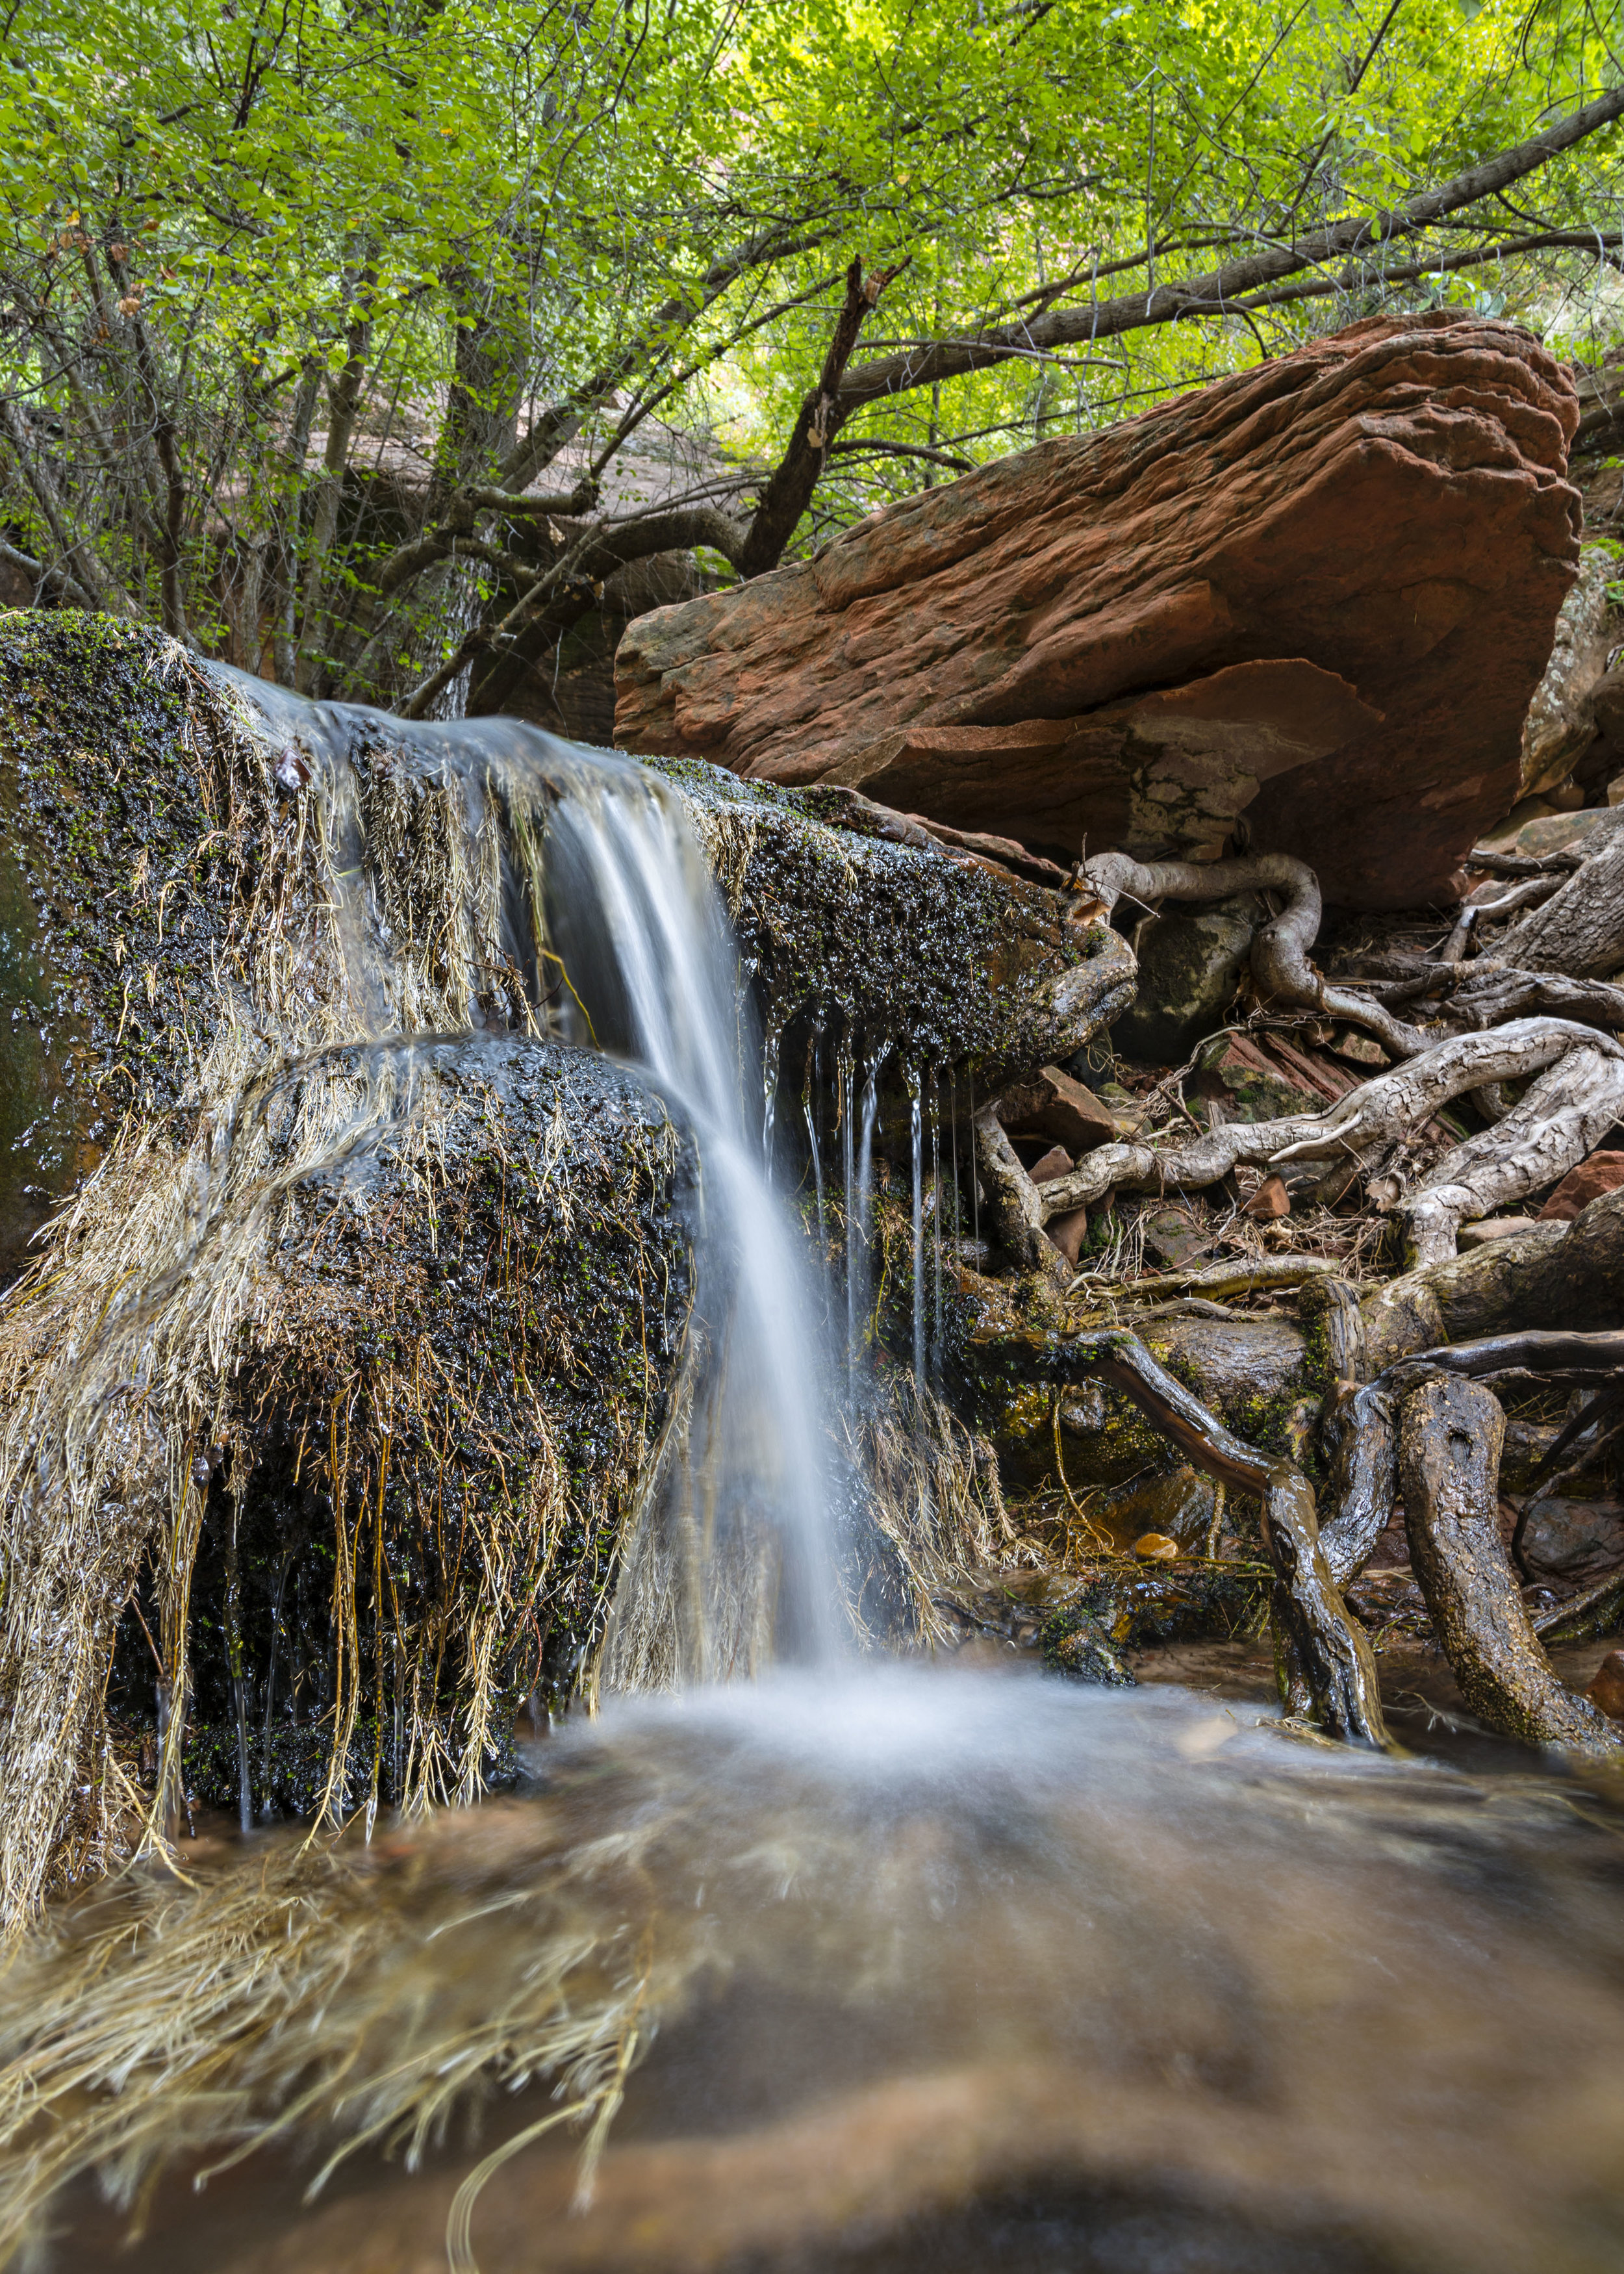 Tree roots reach for nourishment around waterfall above Middle Emerald Pool in Zion National Park.  Nikon D800, Nikkor 24-120mm lens @ 24mm, ISO 100, f13, 1.3 seconds.